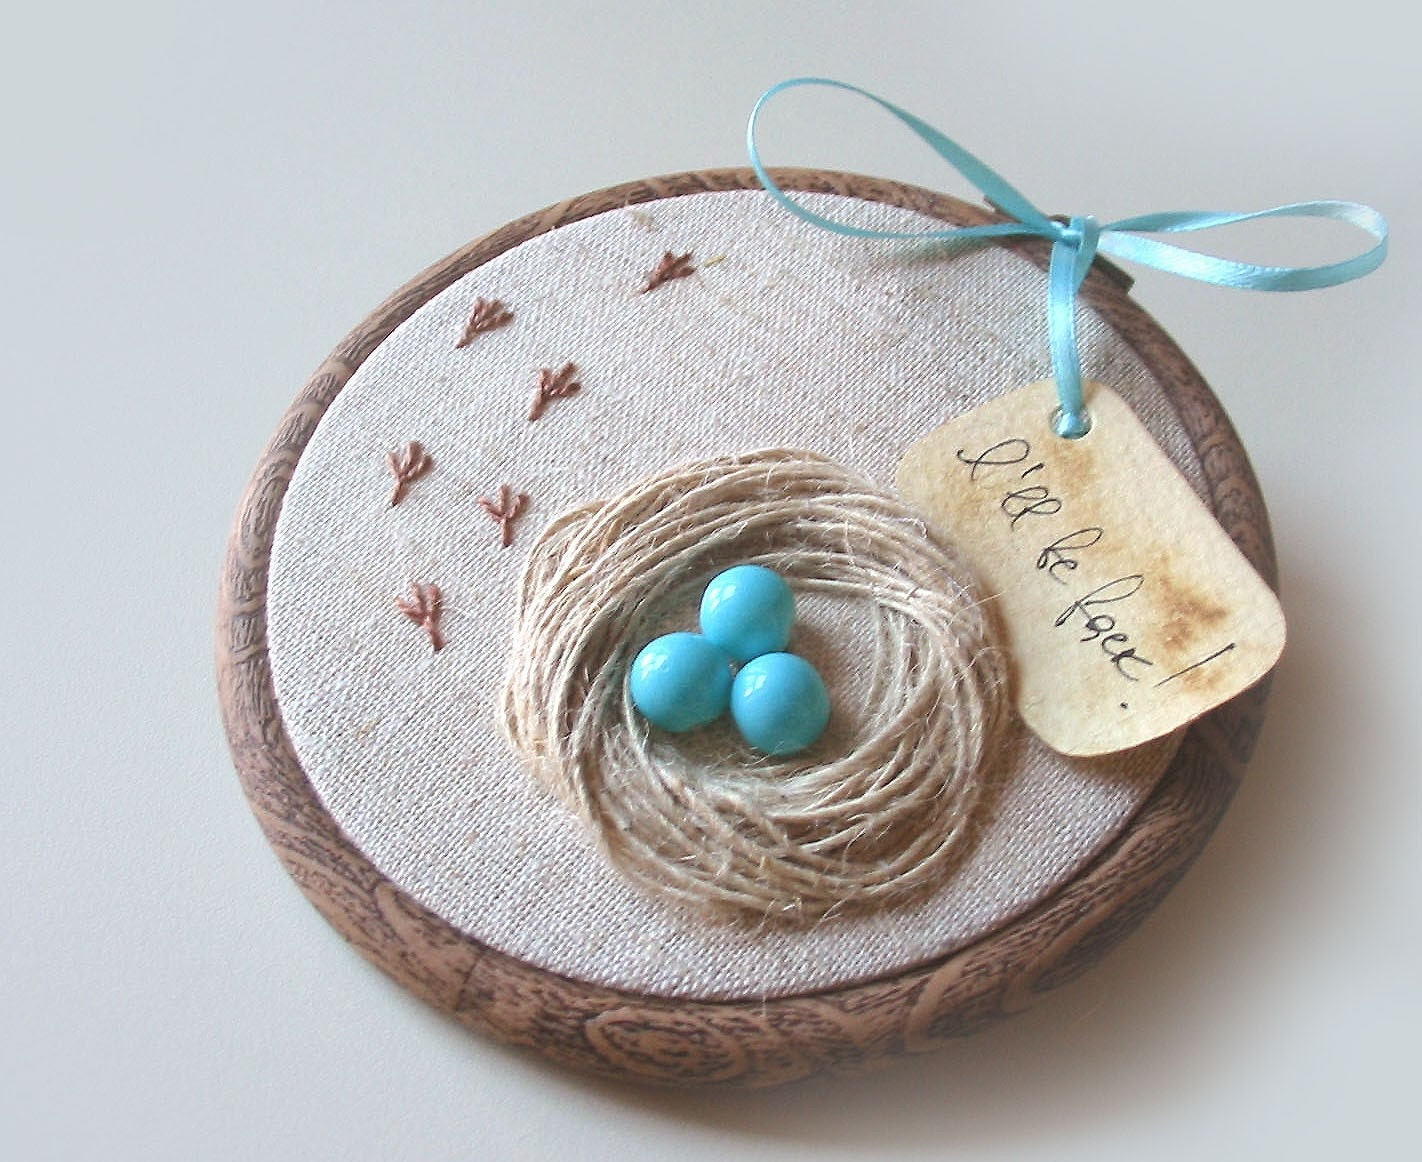 Organic Hand Embroidered Wall Hanging Nest with Robin Eggs- I WILL BE BACK - Free Worldwide Shipping